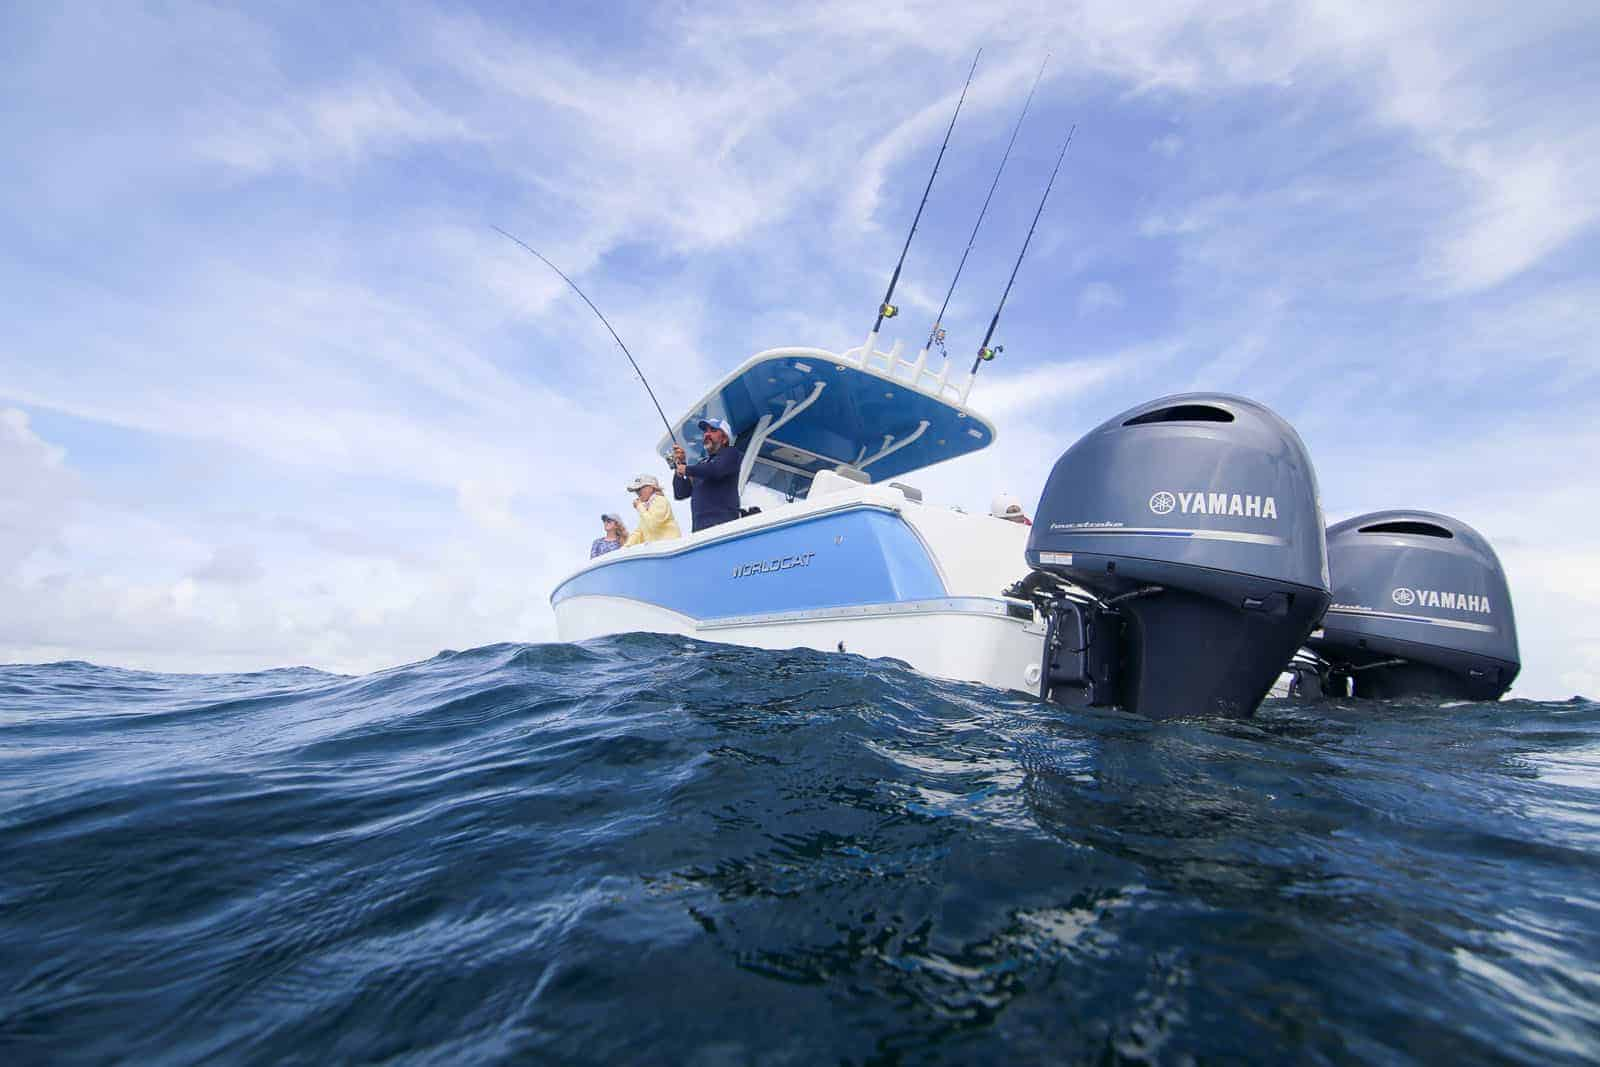 Yamaha 200 HP Digital 4-strokes with Command Link Plus® gauge, rigging, controls and props